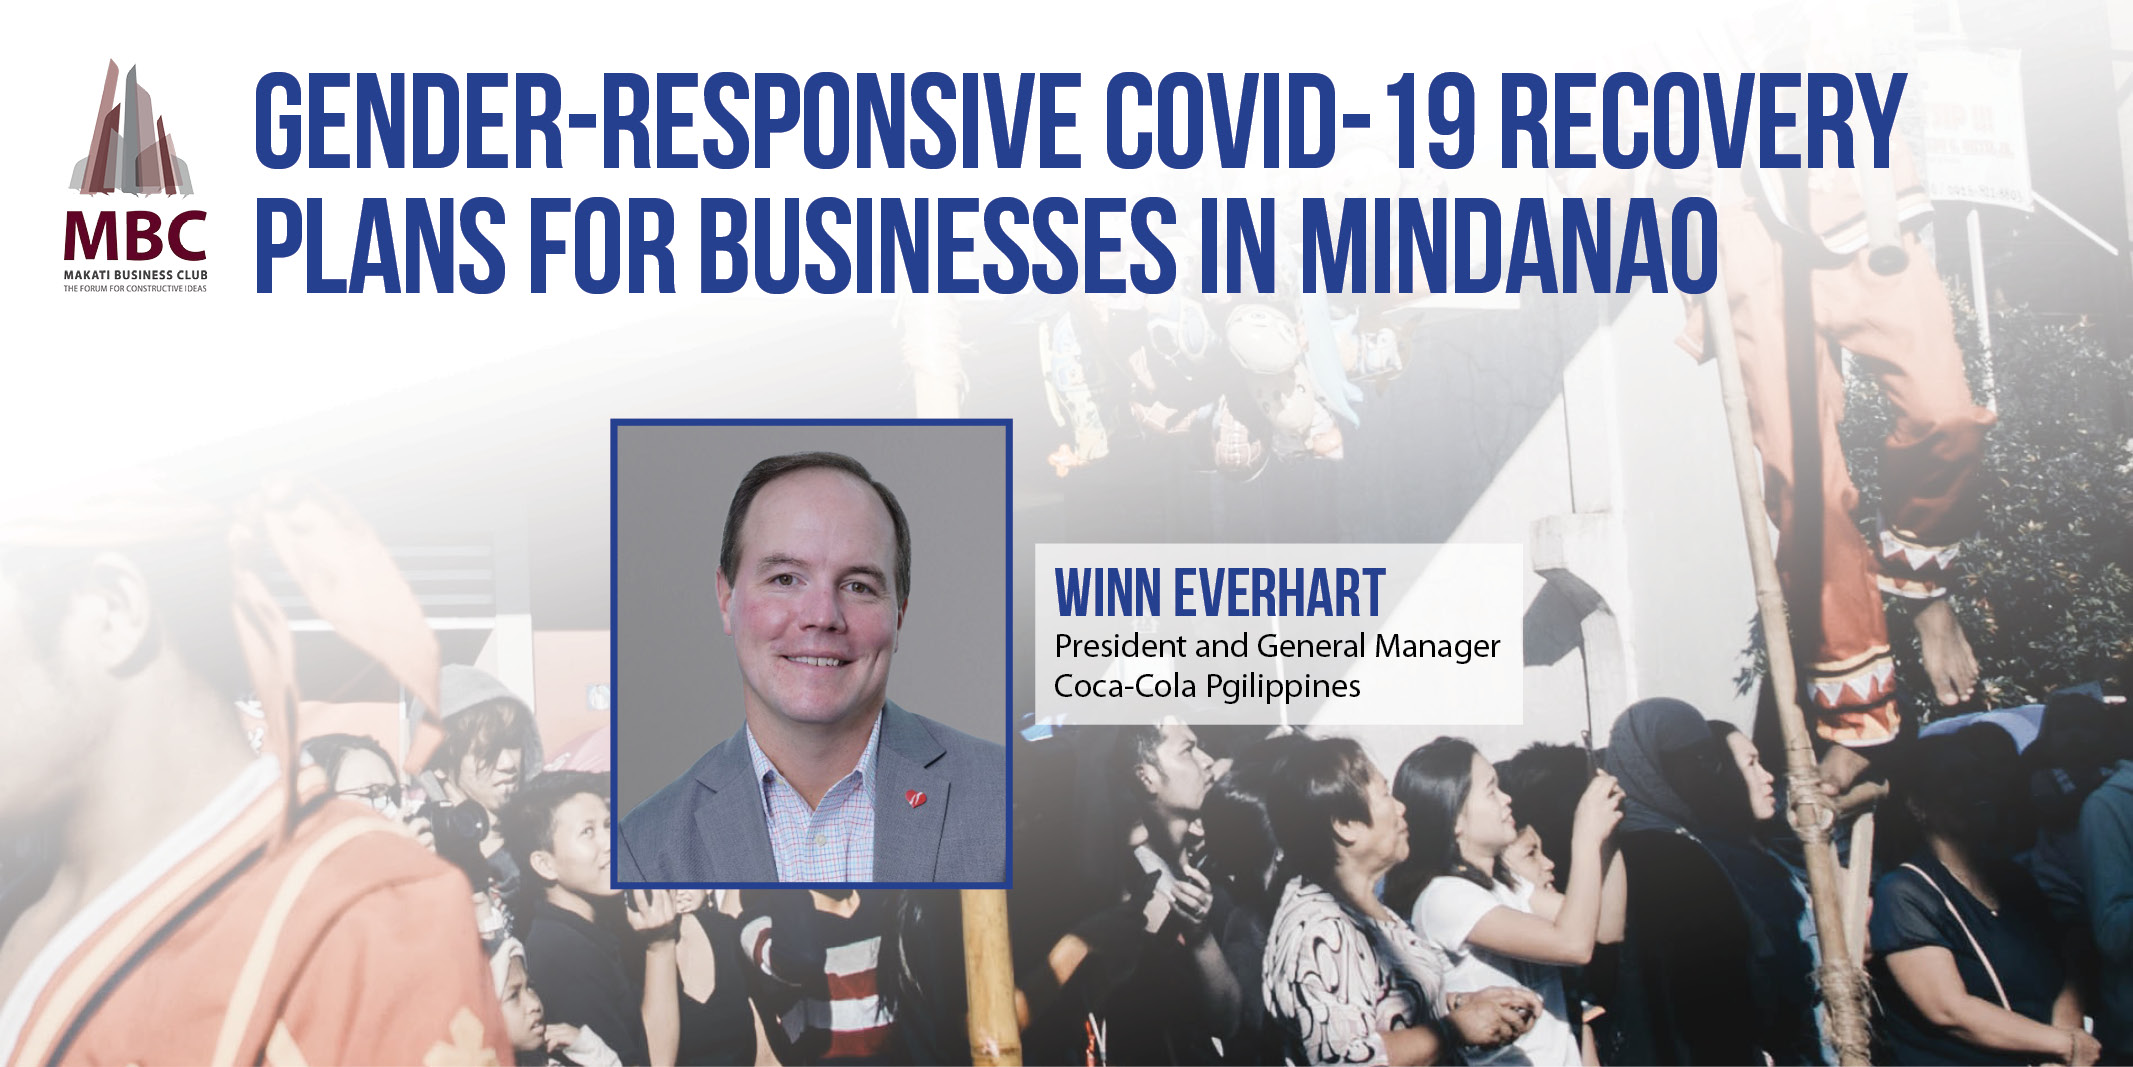 Gender-Responsive COVID-19 Recovery Plans for Businesses in Mindanao